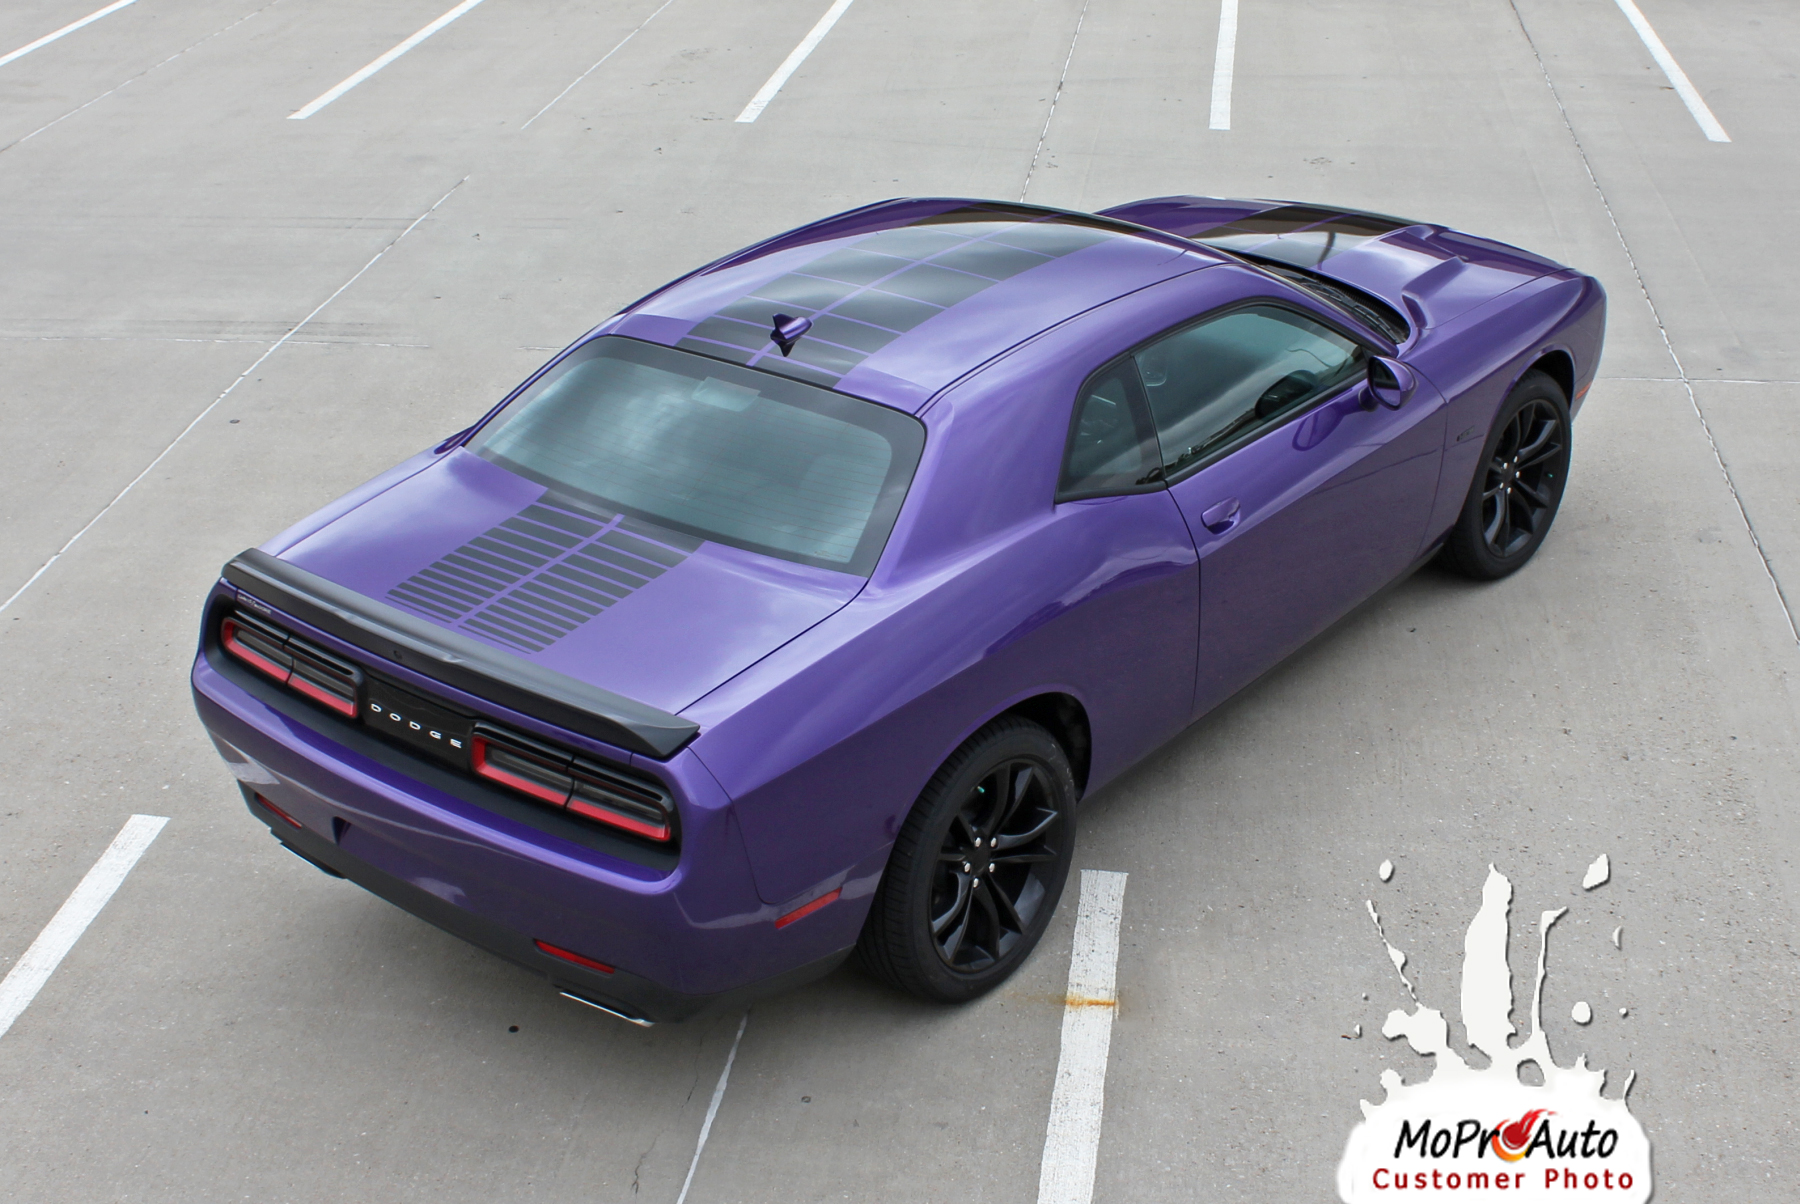 2008, 2009, 2010, 2011, 2012, 2013, 2014, 2015, 2016, 2017, 2018, 2019, 2020 Dodge Challenger PULSE RALLY Vinyl Graphics, Stripes and Decals Set